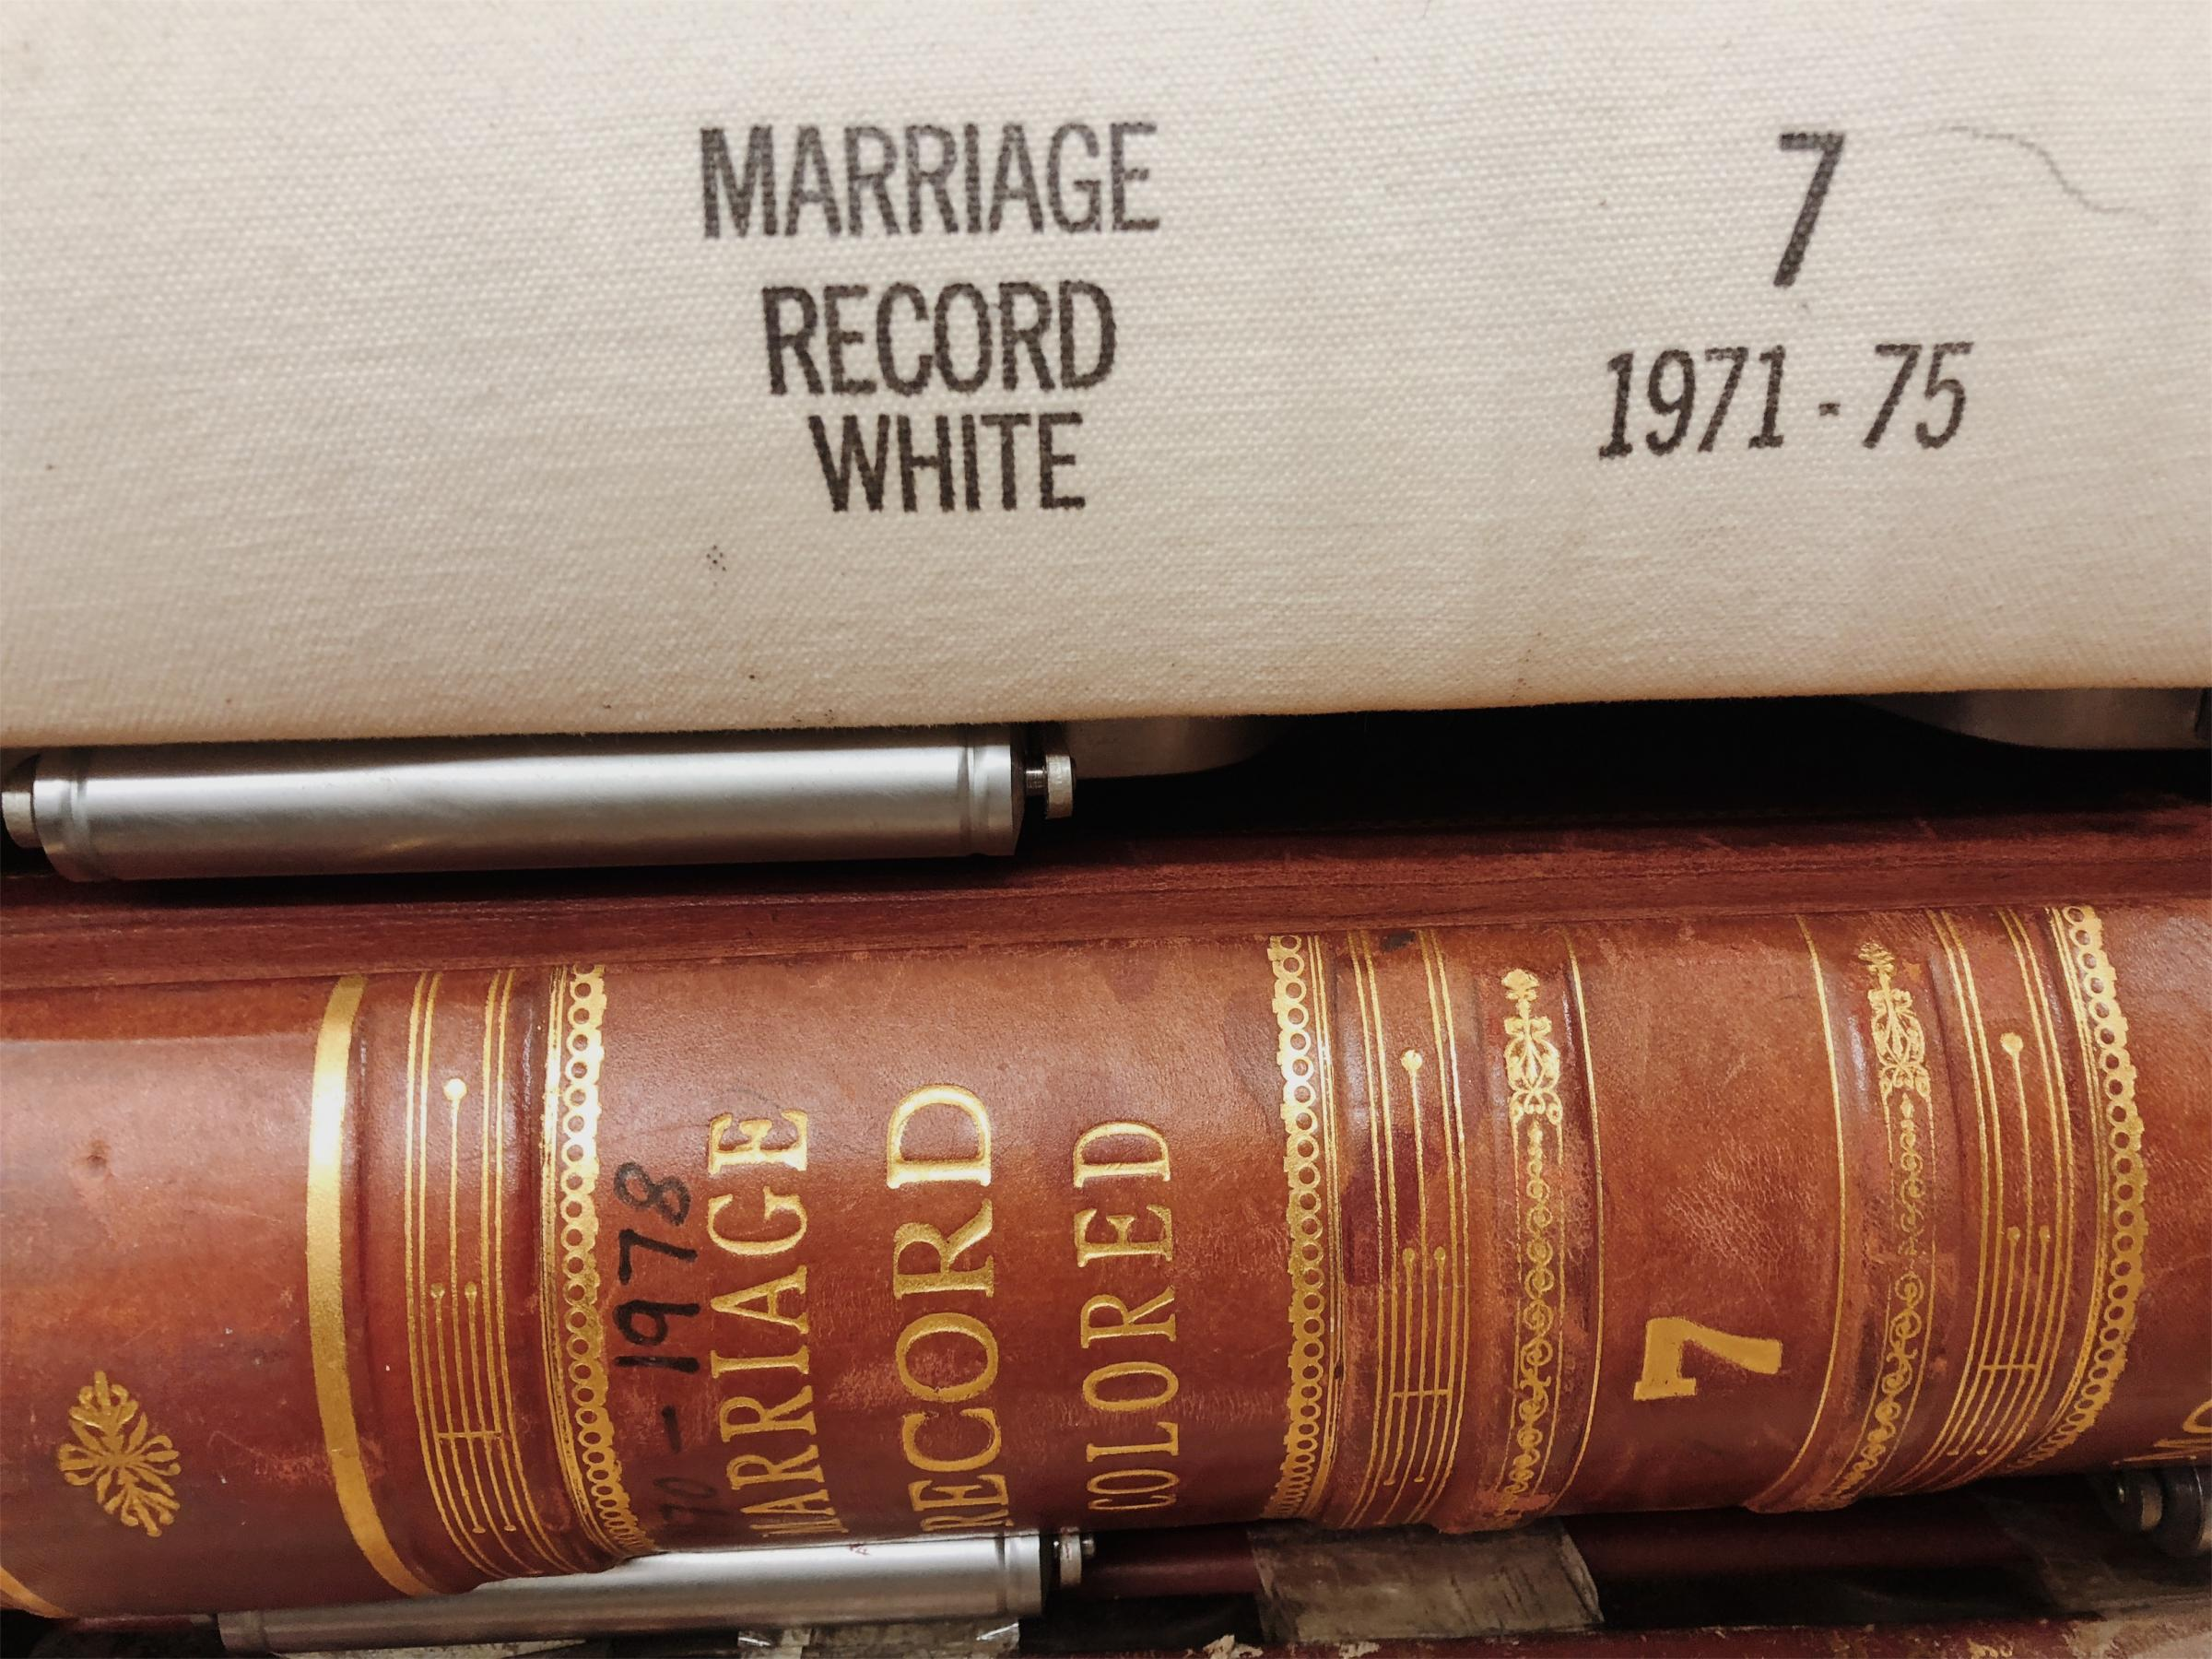 Marriage record book spines